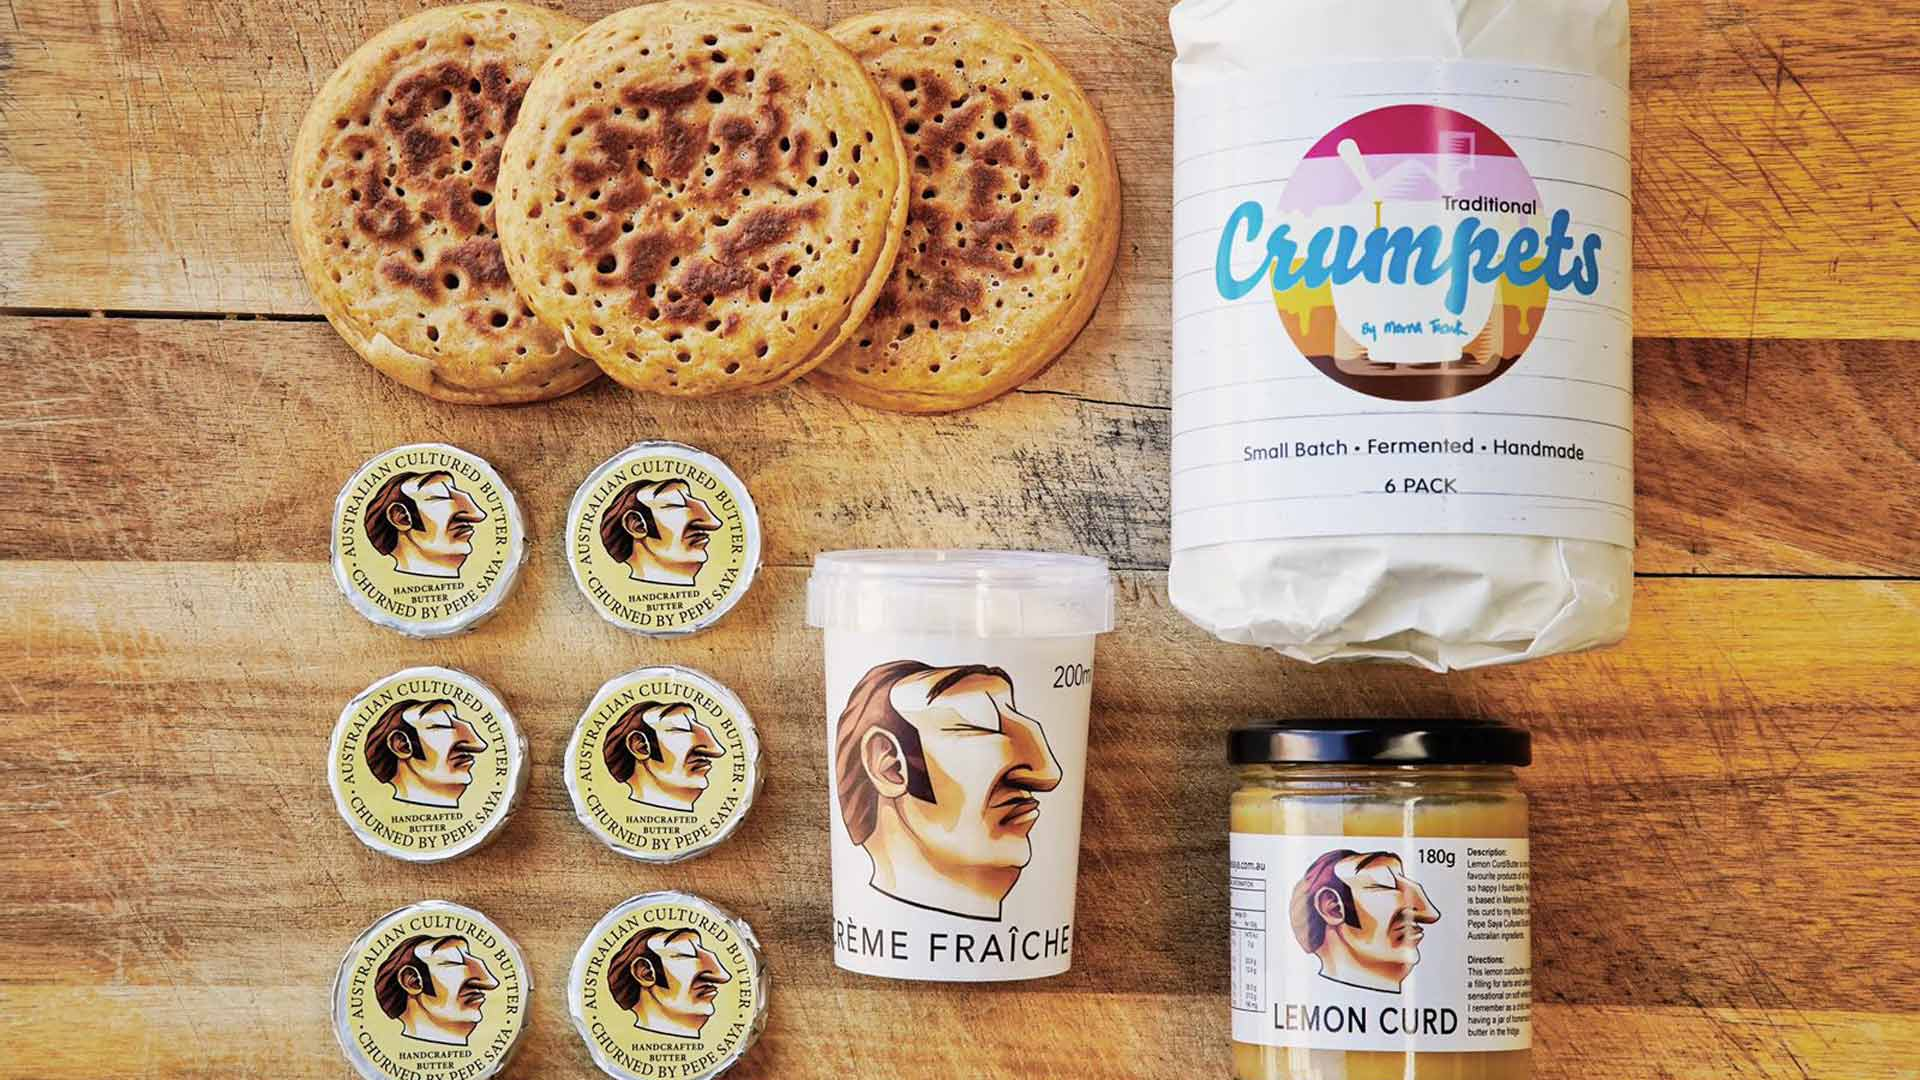 Pepe Saya and Crumpets by Merna Are Now Delivering Lush Breakfast Boxes Across Australia